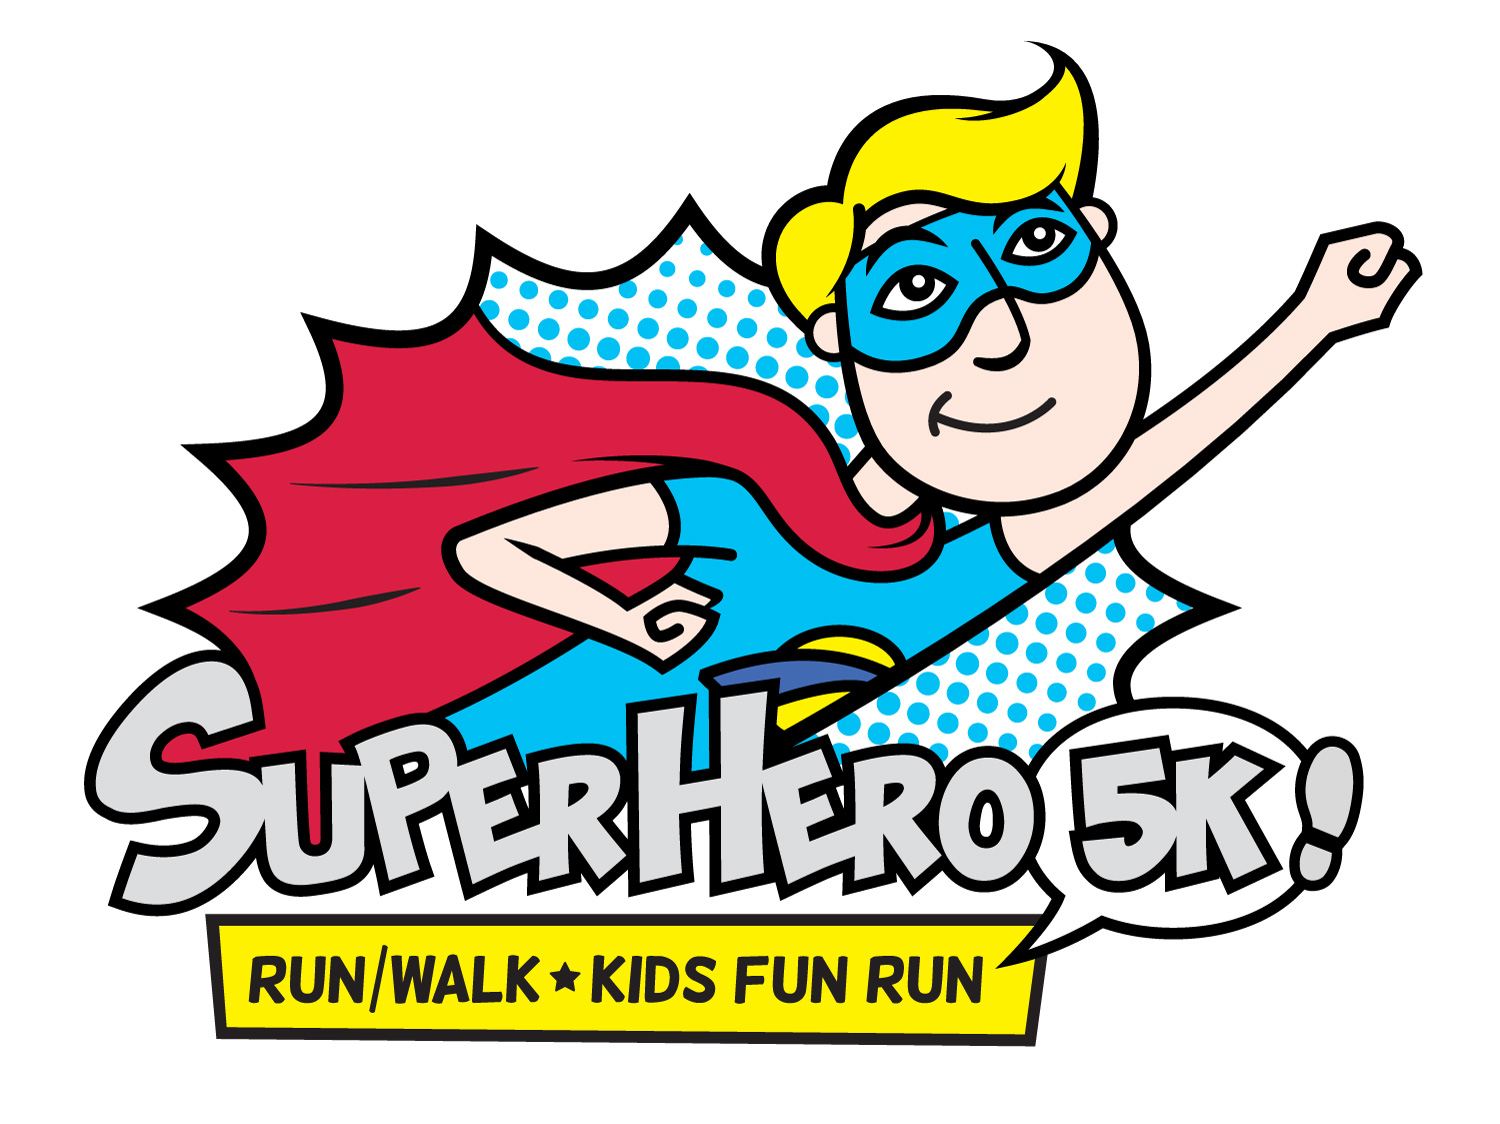 Register for the 2017 Loudoun Chamber Superhero 5k Run/Walk & Kids Fun Run